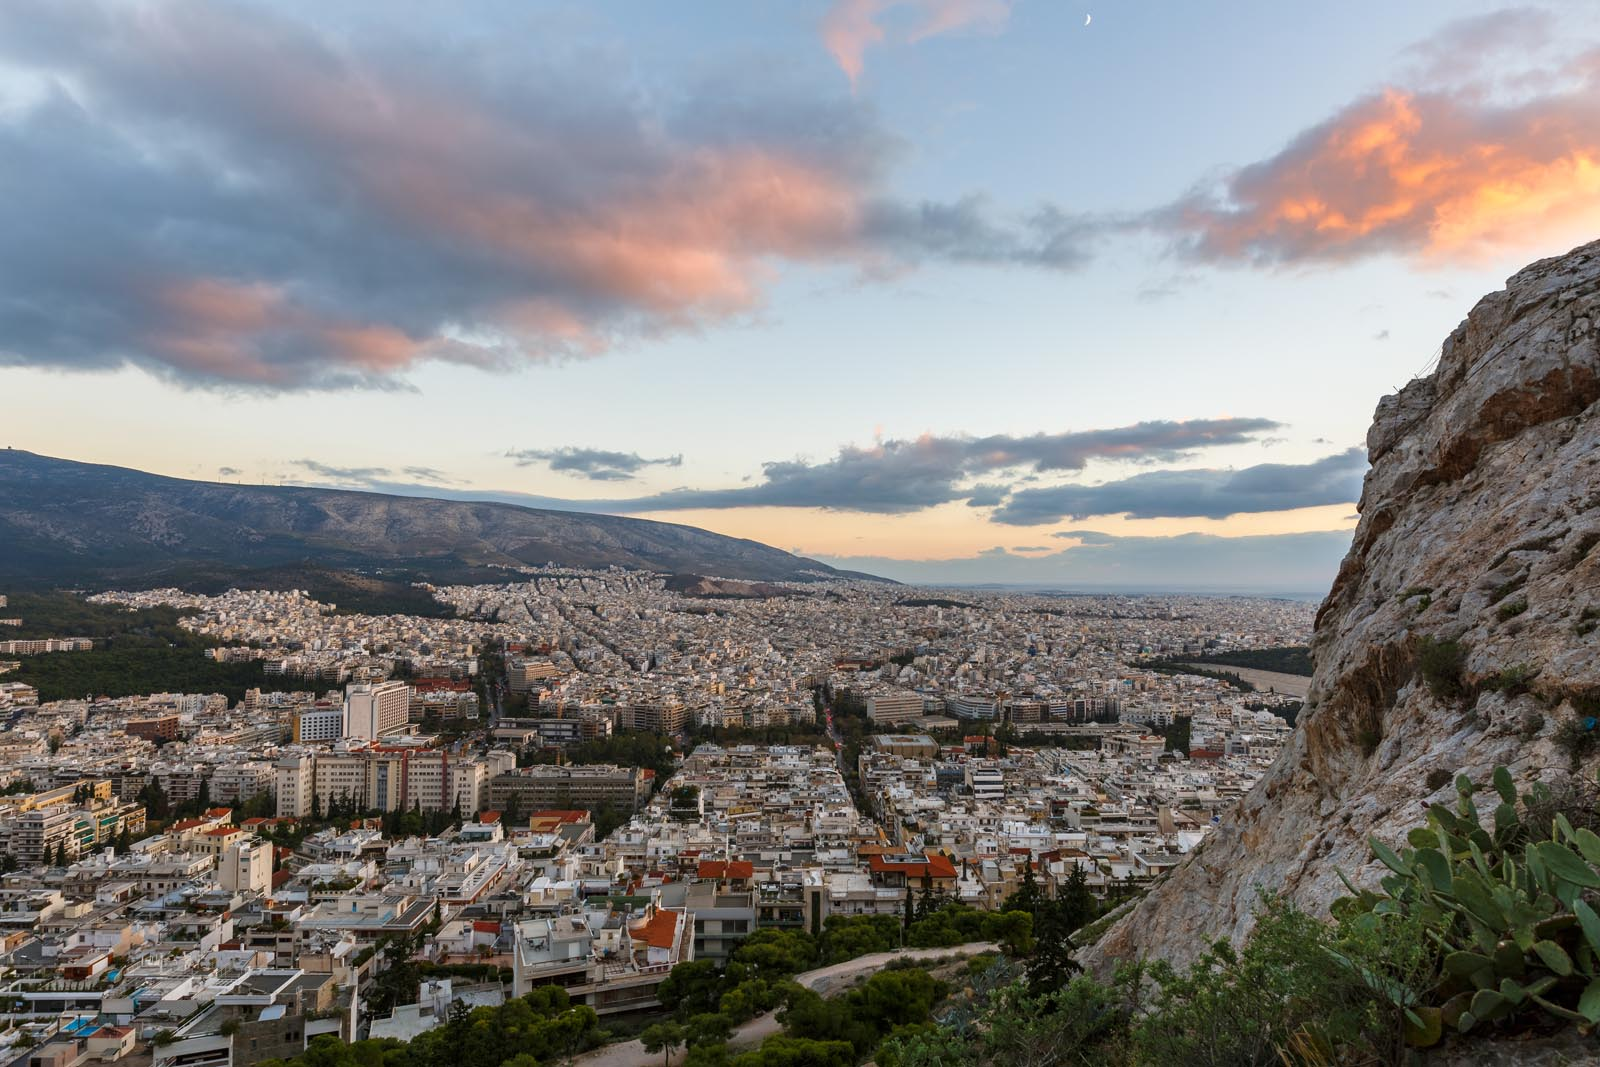 Enlarged - Athens Greece with Sunset